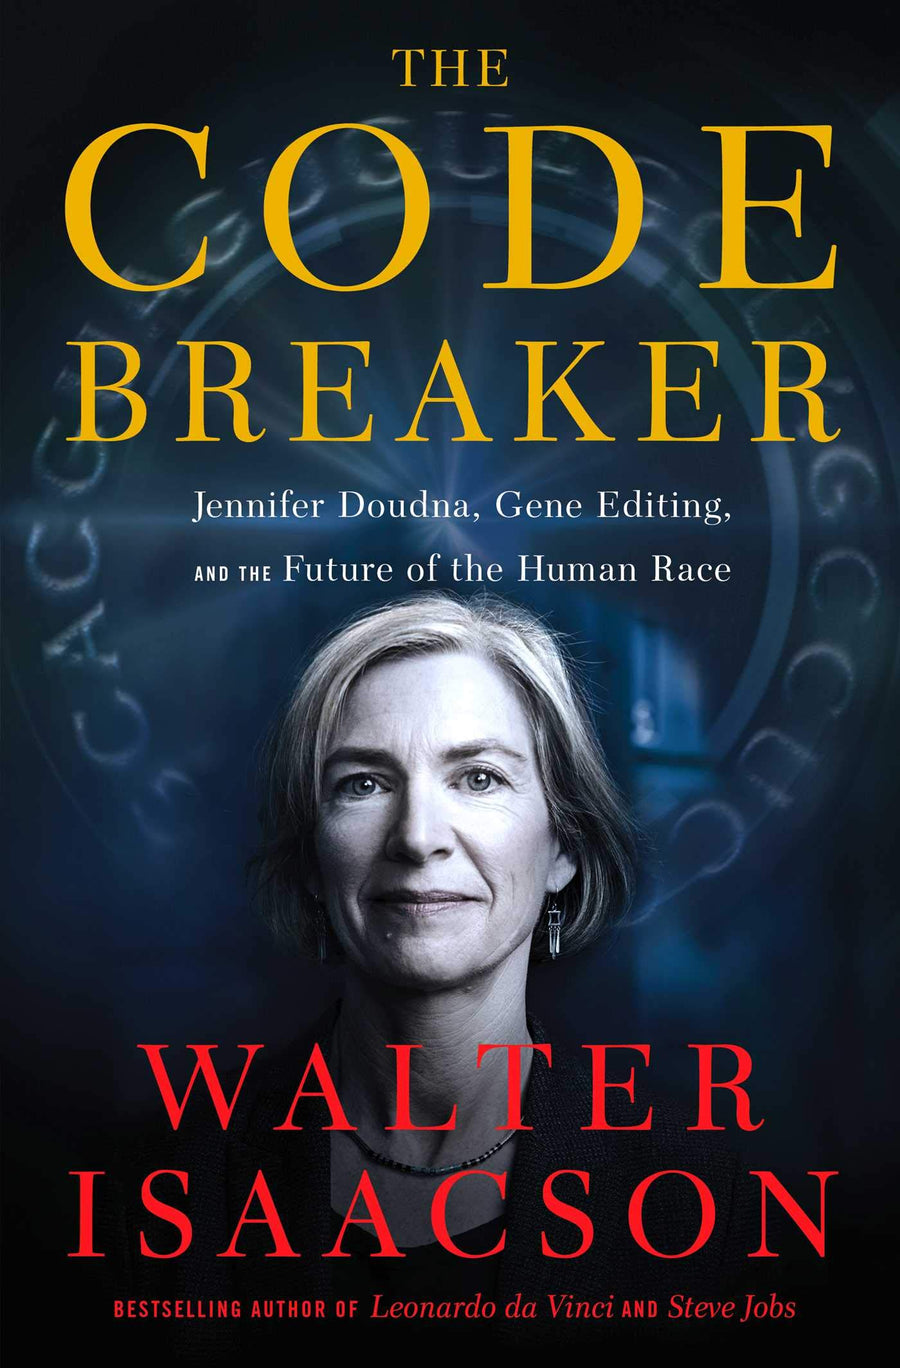 The Code Breaker: Jennifer Doudna, Gene Editing, and the Future of the Human Race